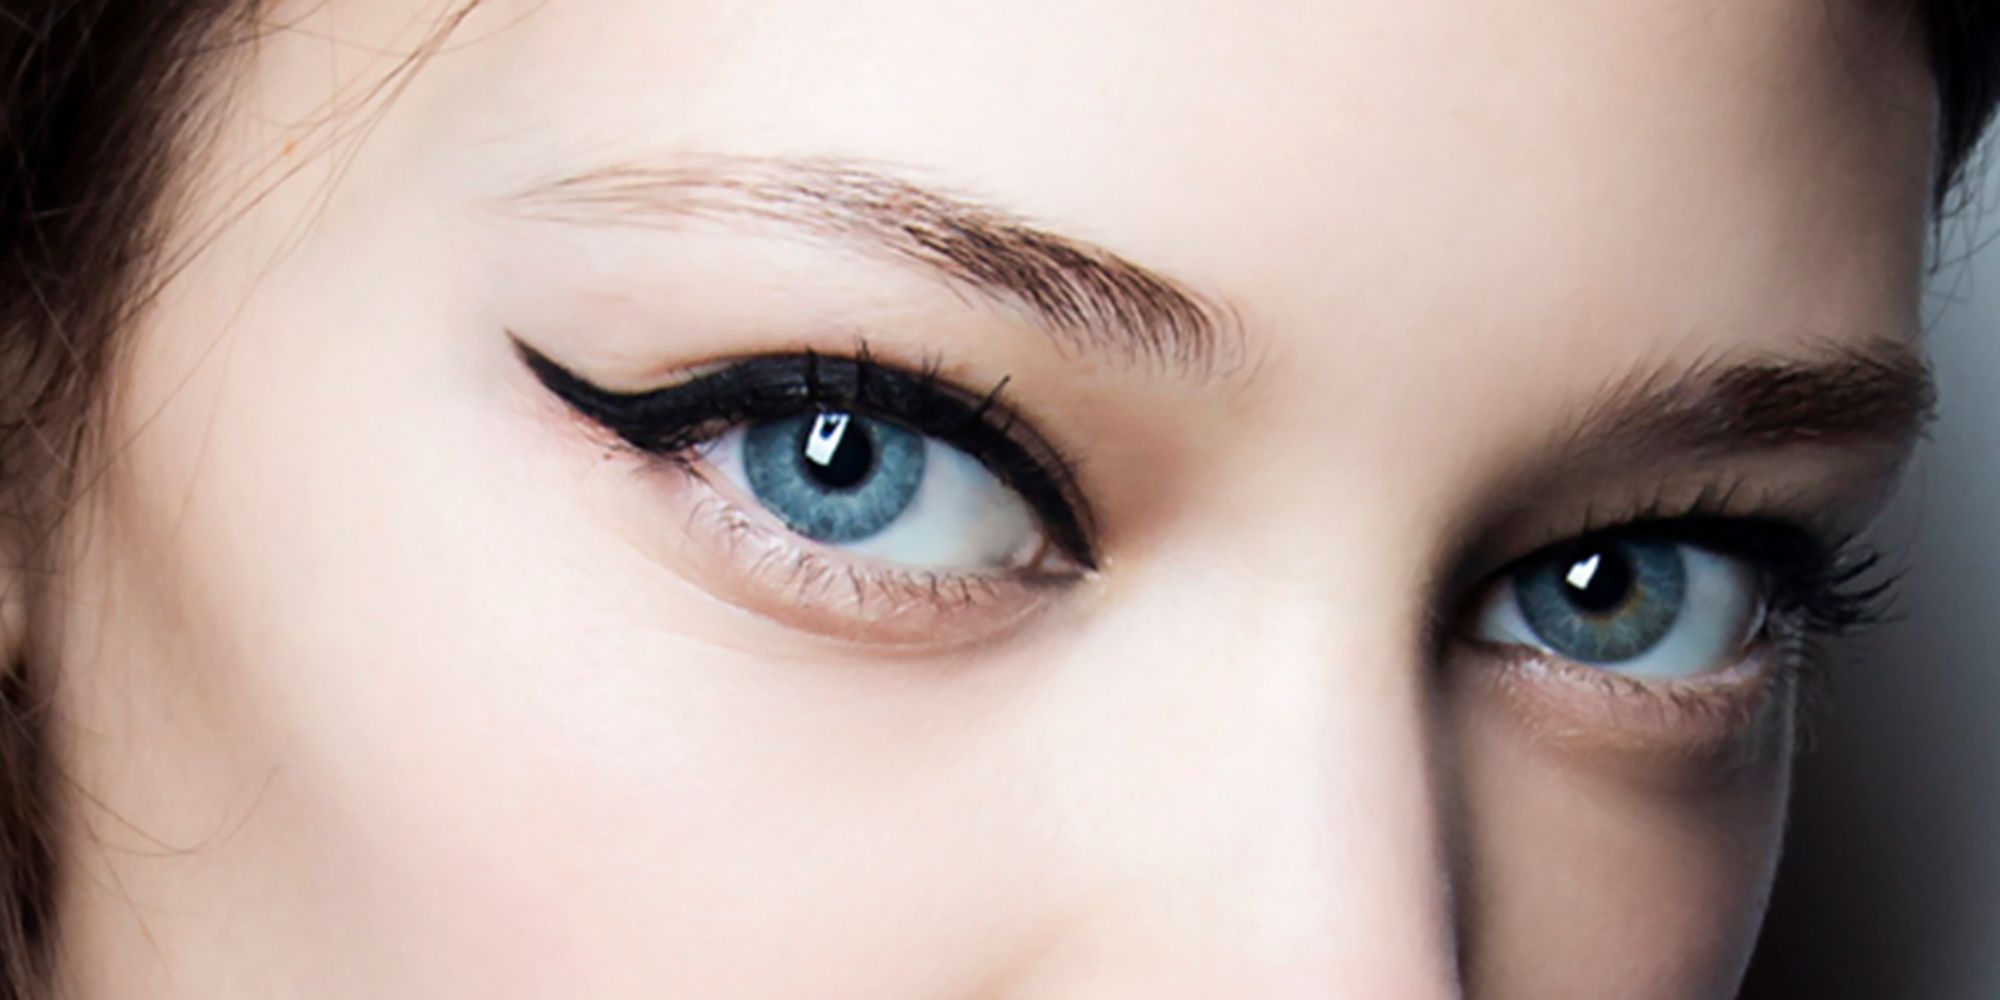 How To Tint Eyebrows At Home The 5 Best Eyebrow Tinting Kits For